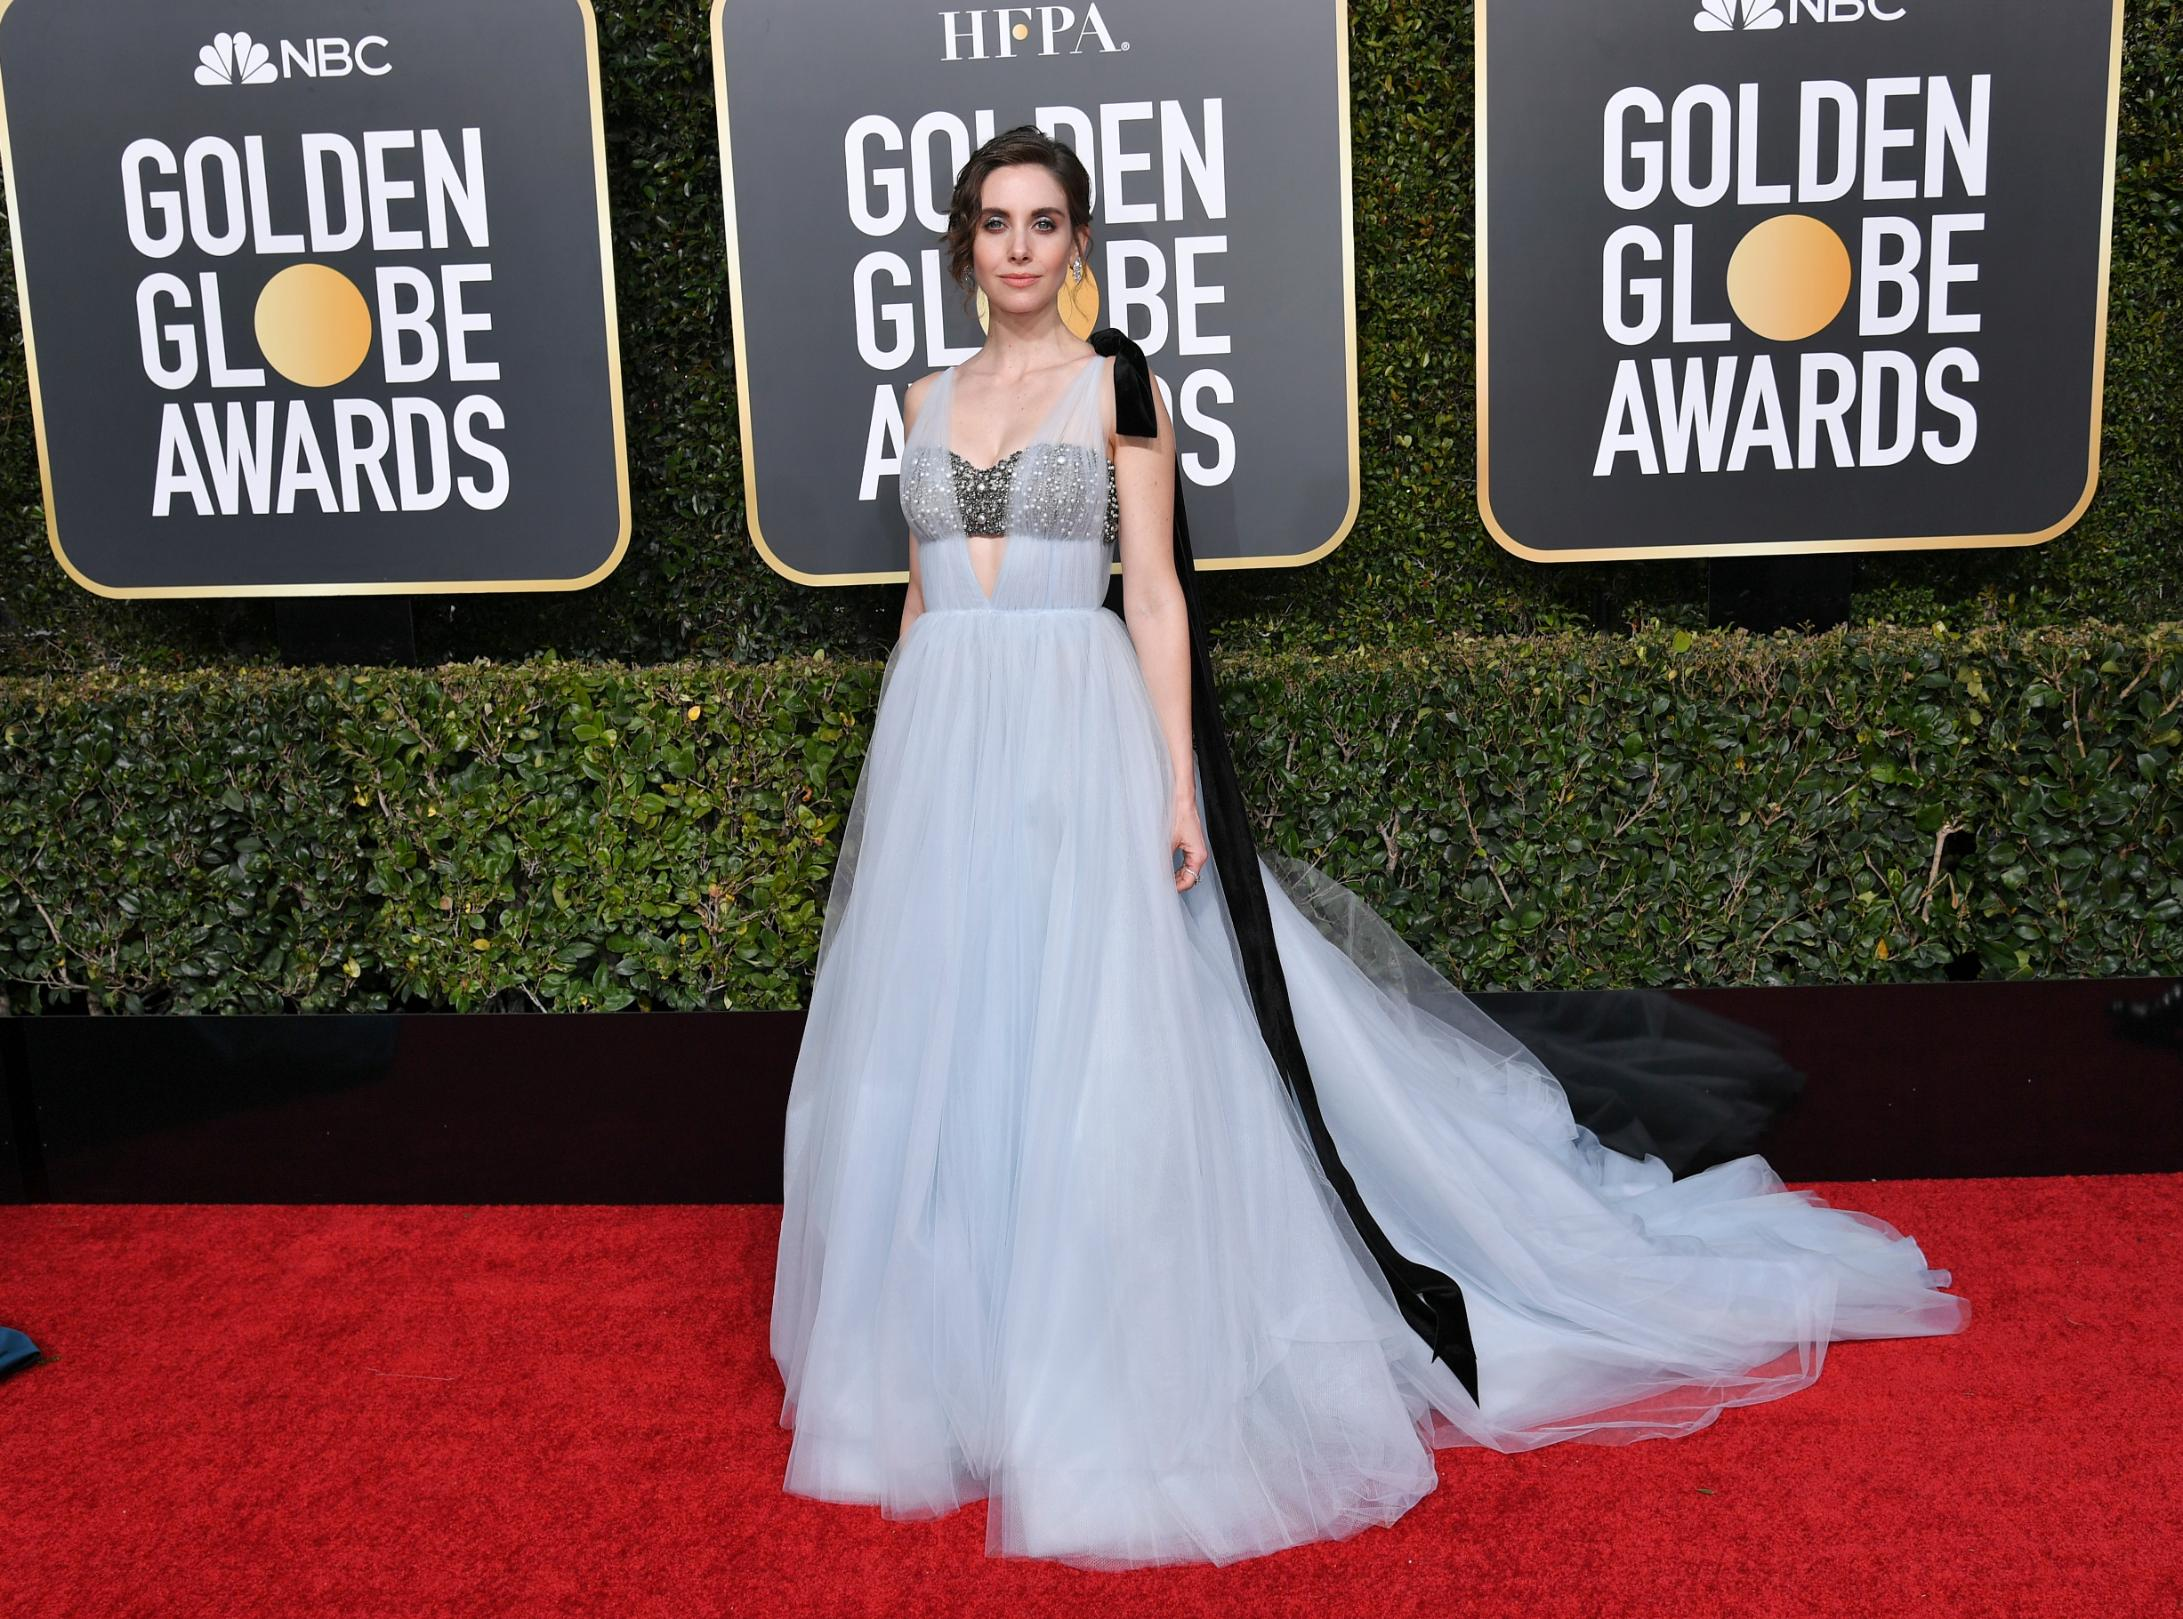 e9fe0f0c0c0 Golden Globes best fashion on the red carpet - CNN Style